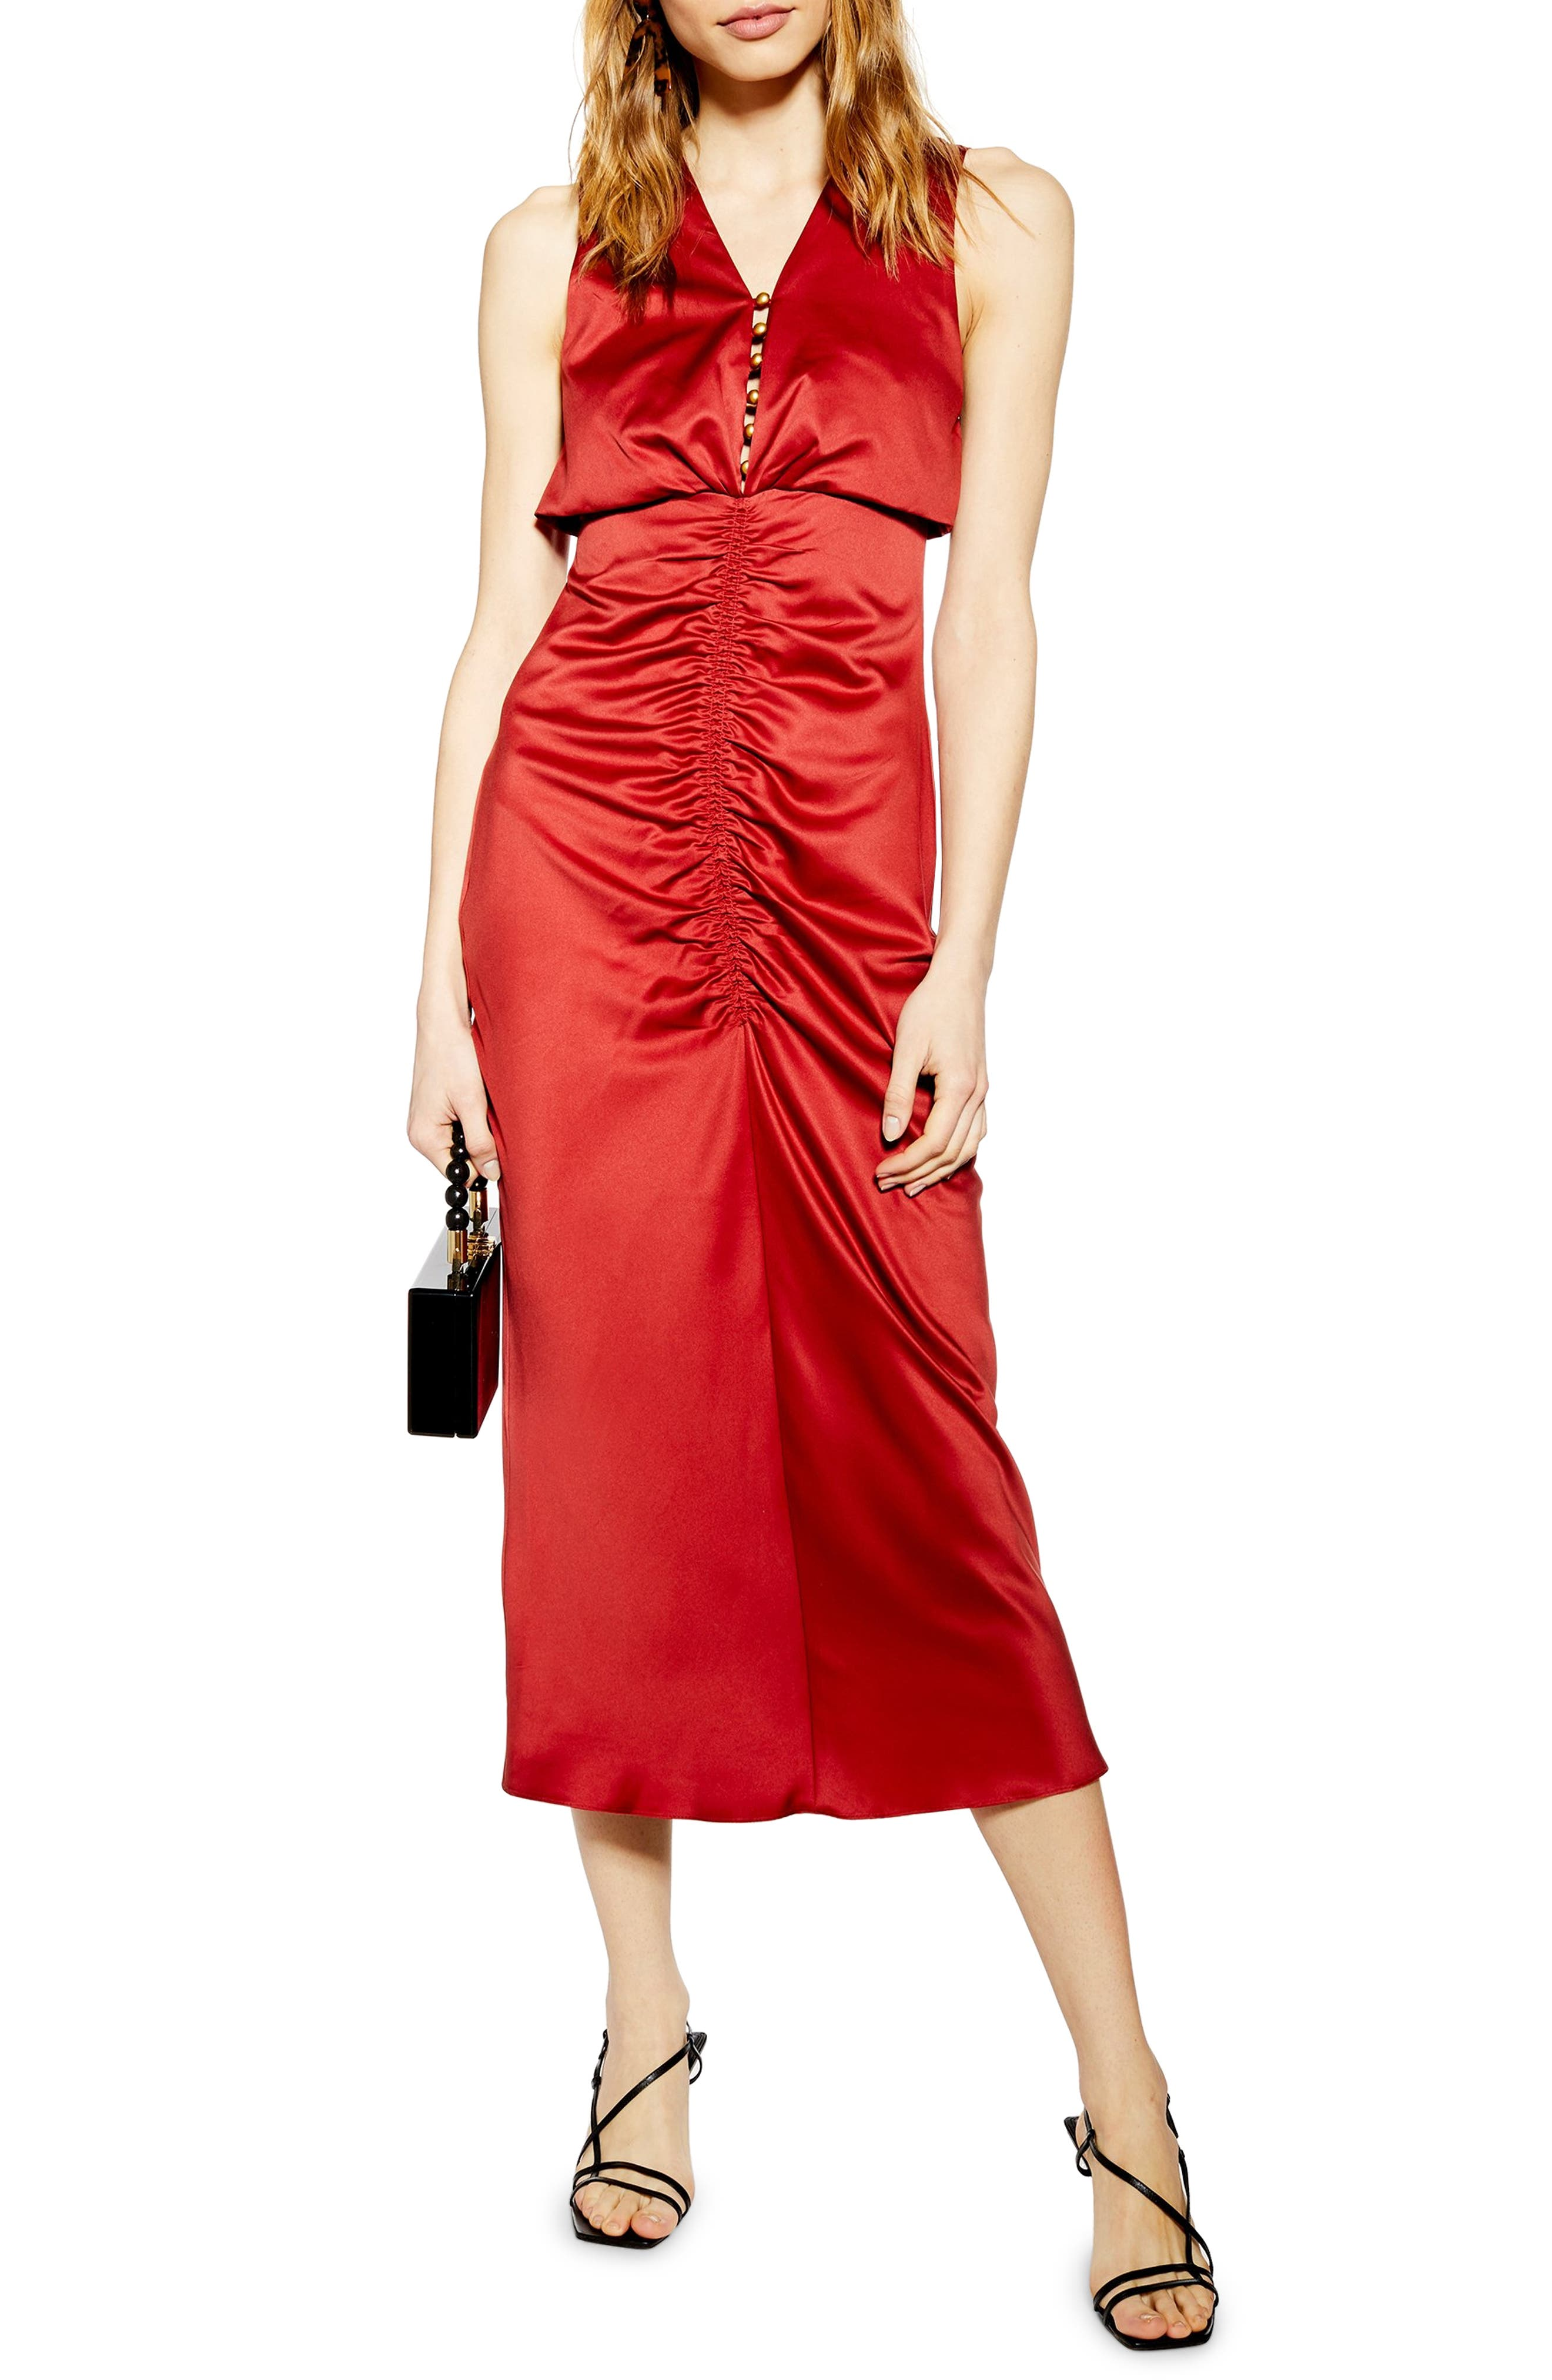 Topshop Ruched Button Satin Midi Dress, US (fits like 0) - Red